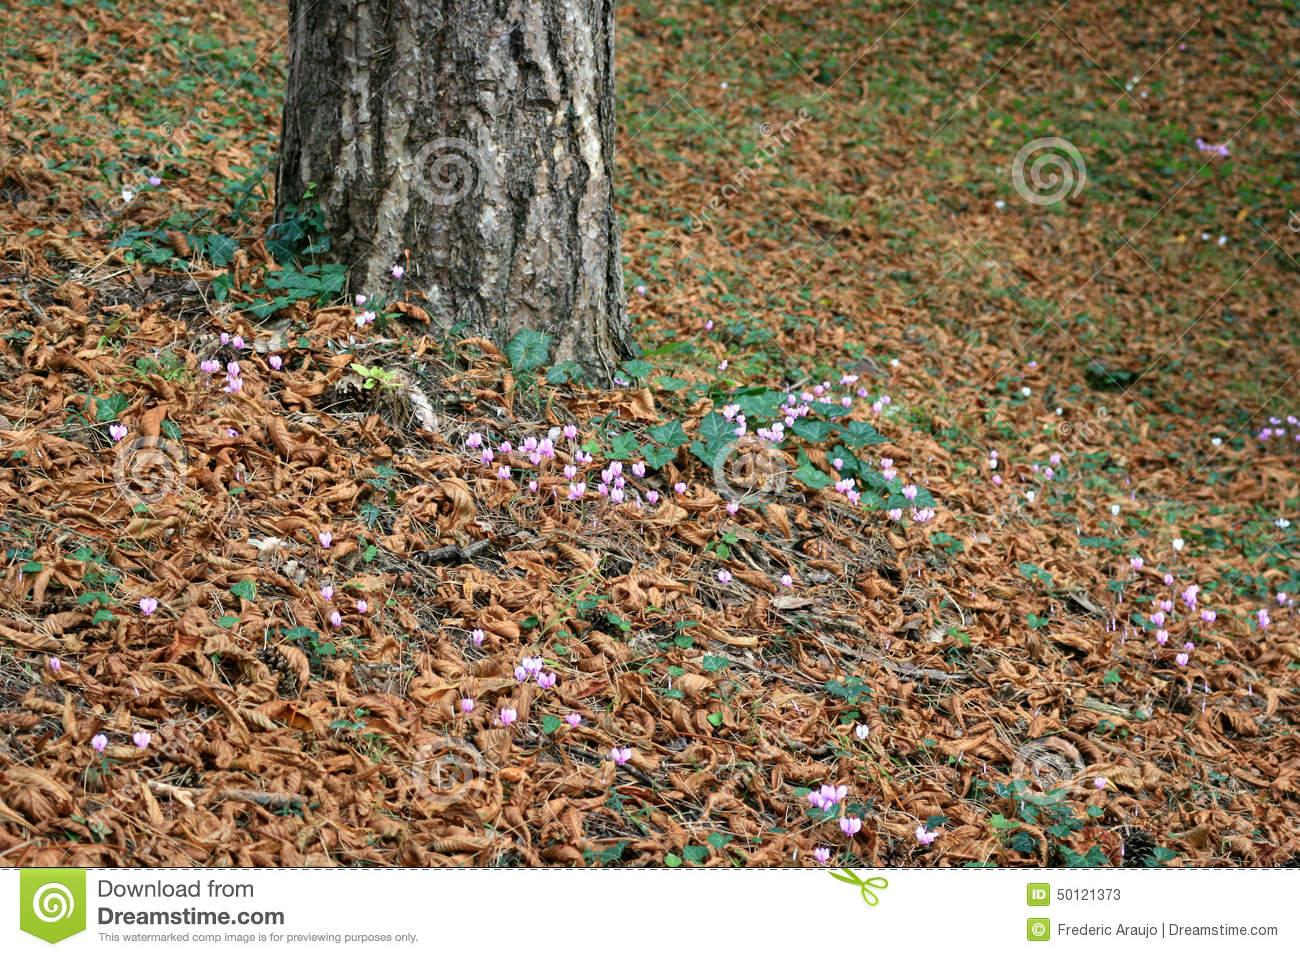 Wild Cyclamens Are Blooming At The Foot Of A Tree In The Gardens Of ...